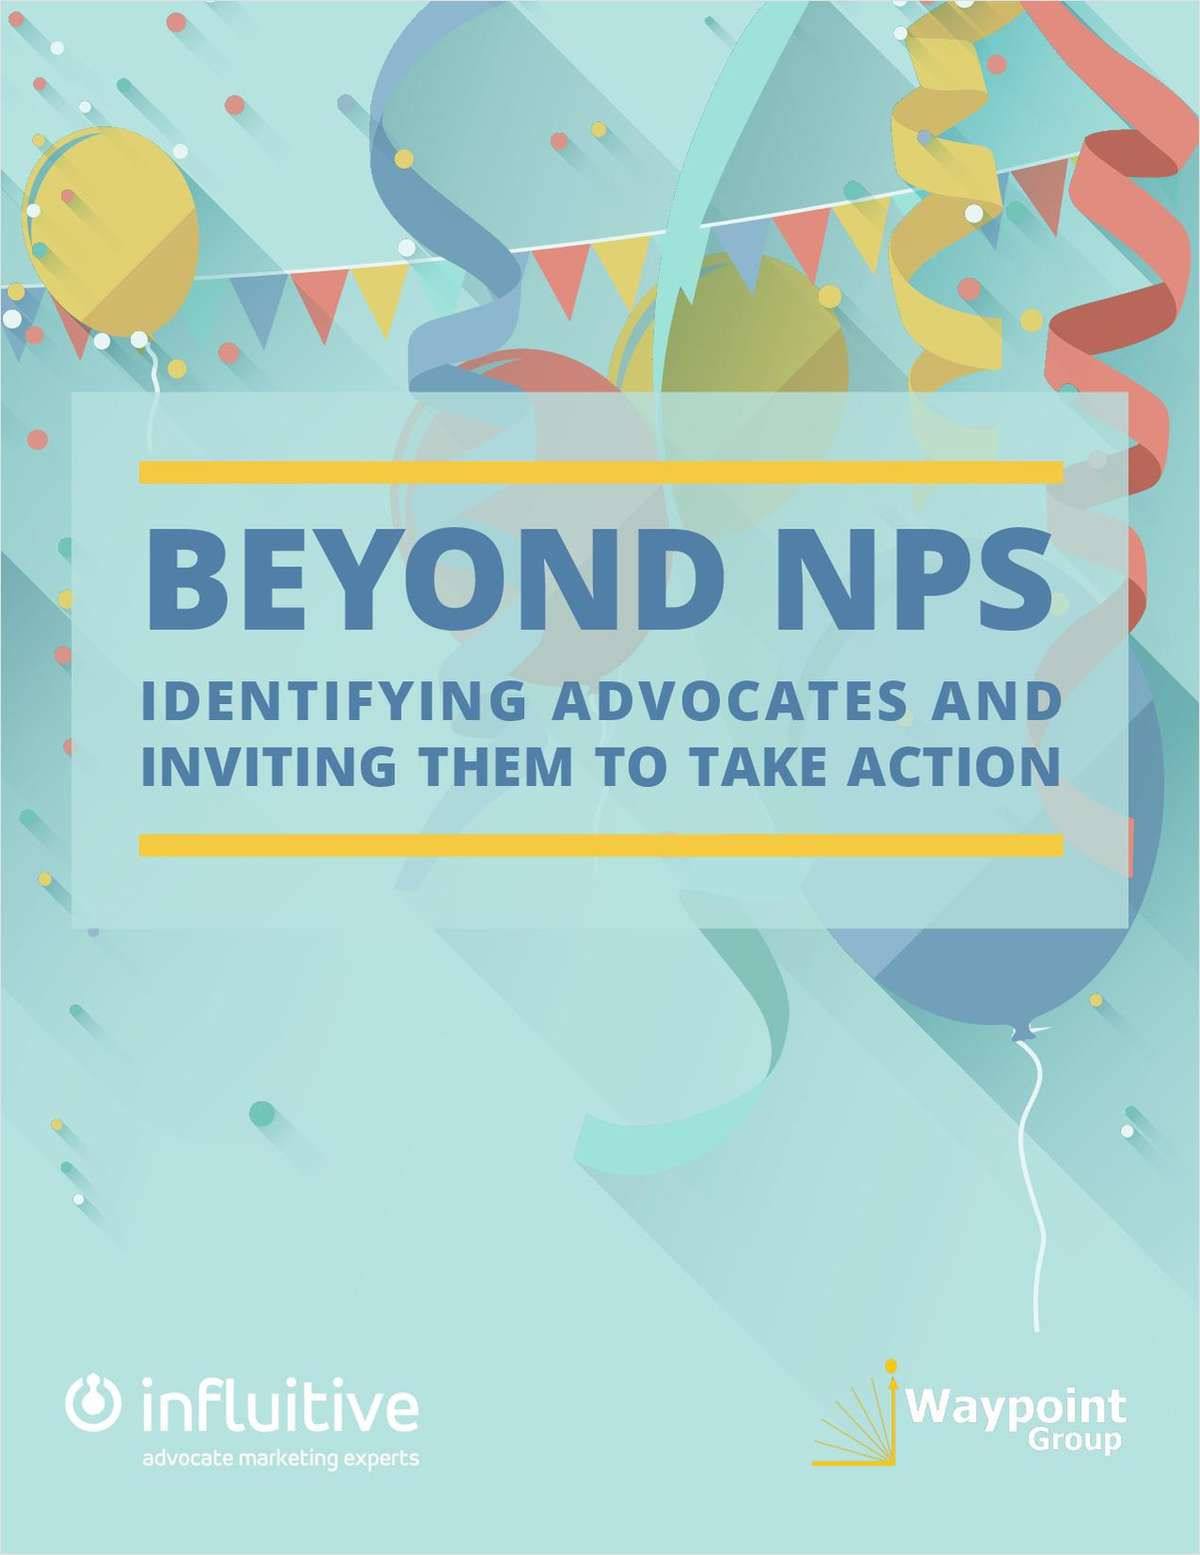 Beyond NPS: Identifying Advocates And Inviting Them To Take Action